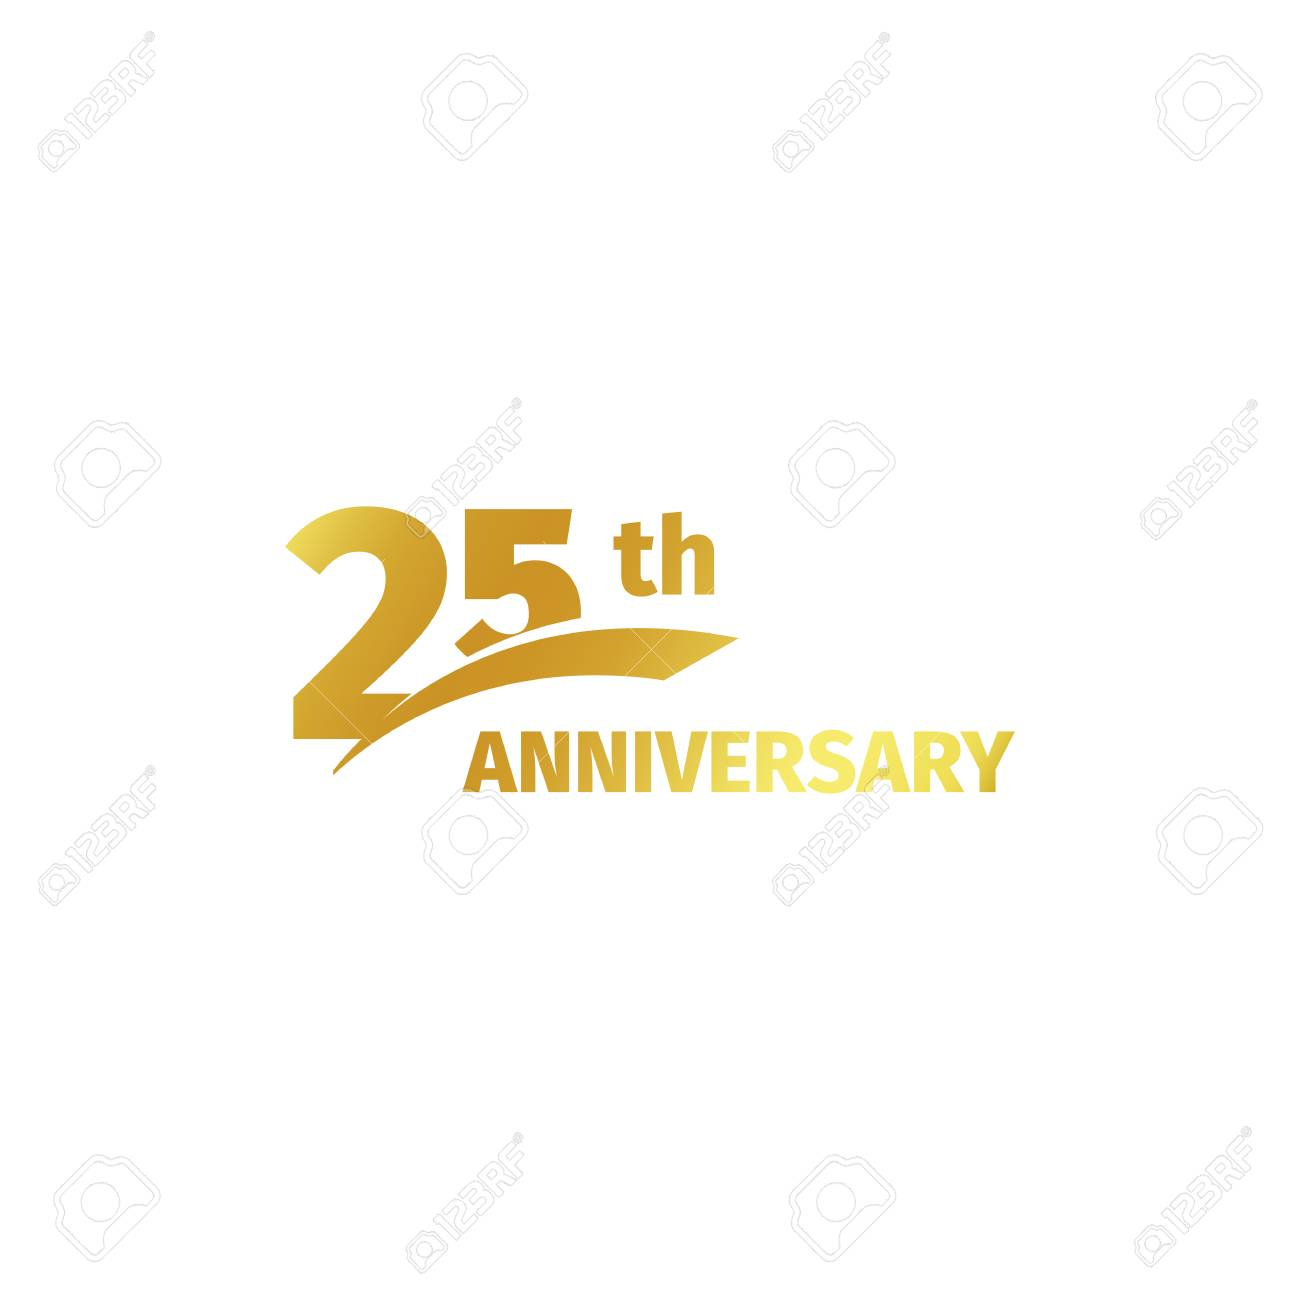 isolated abstract golden 25th anniversary logo on white background rh 123rf com 25th Business Anniversary Golf Logo 25 Th Anniversary